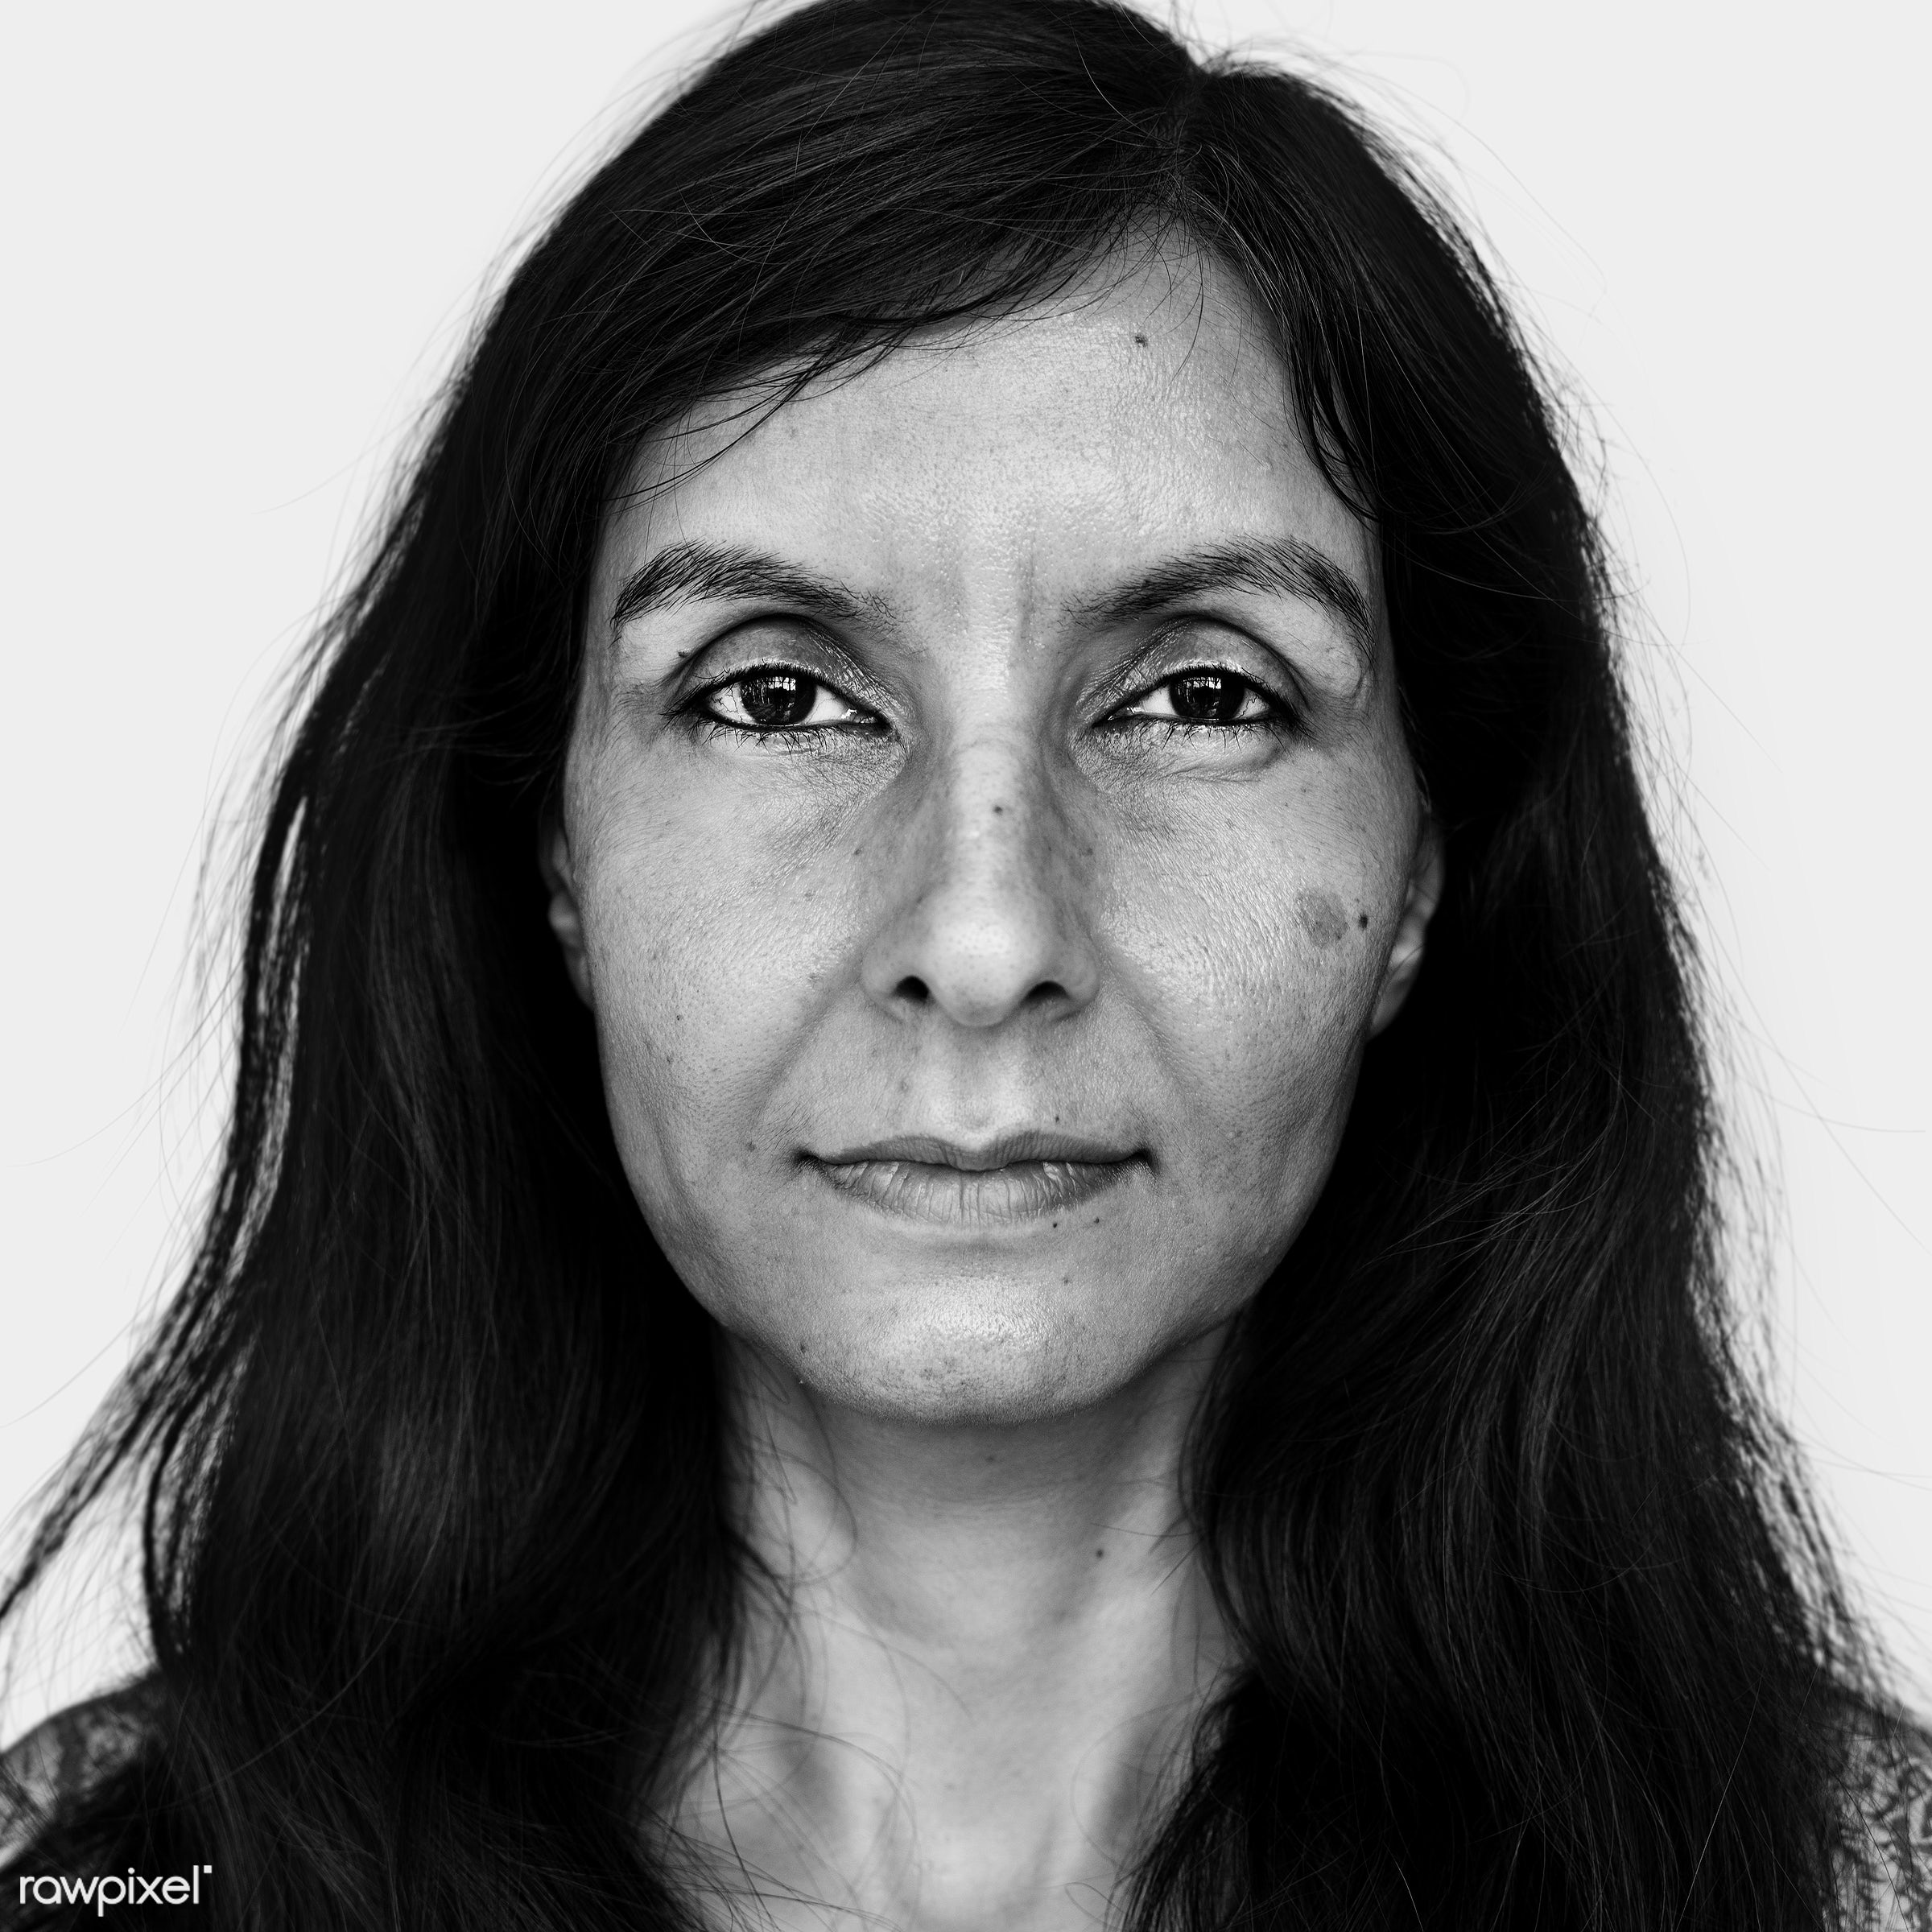 Portrait of an Indian woman - alone, asia, asian, black and white, close up, emotion, expression, face, feeling, gray scale...